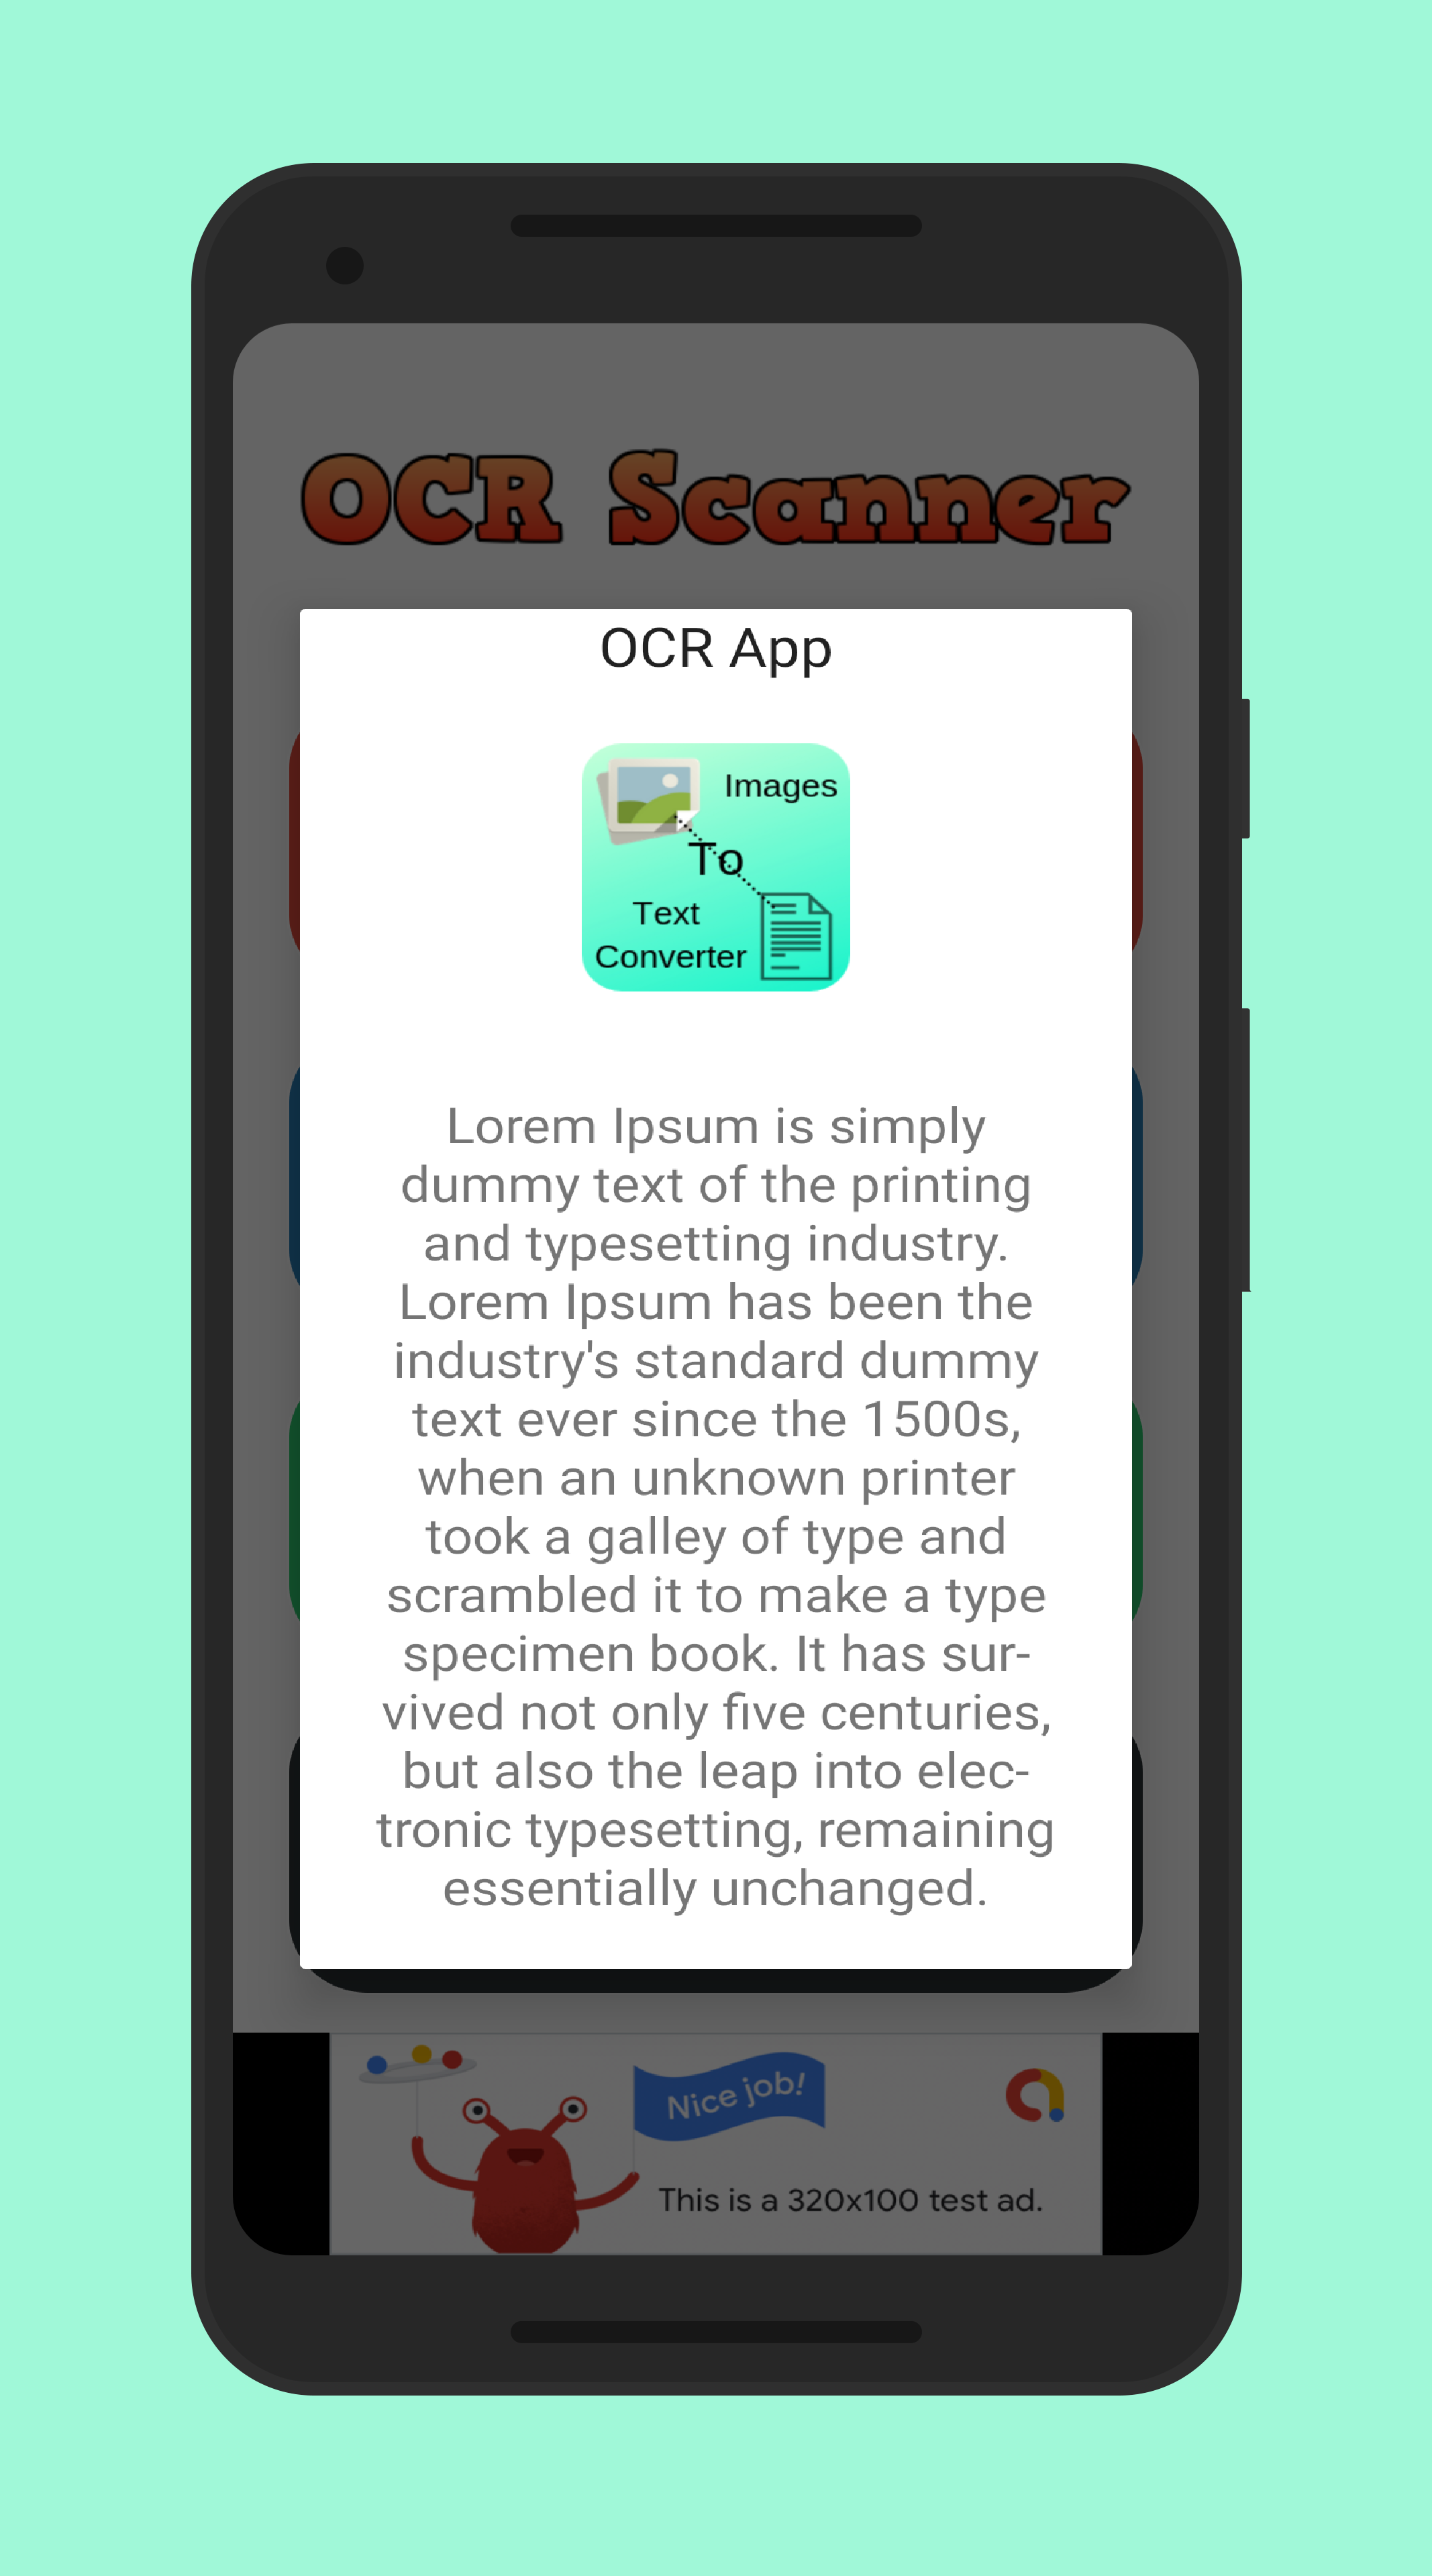 OCR Scanner - Image to Text Recognition Android App